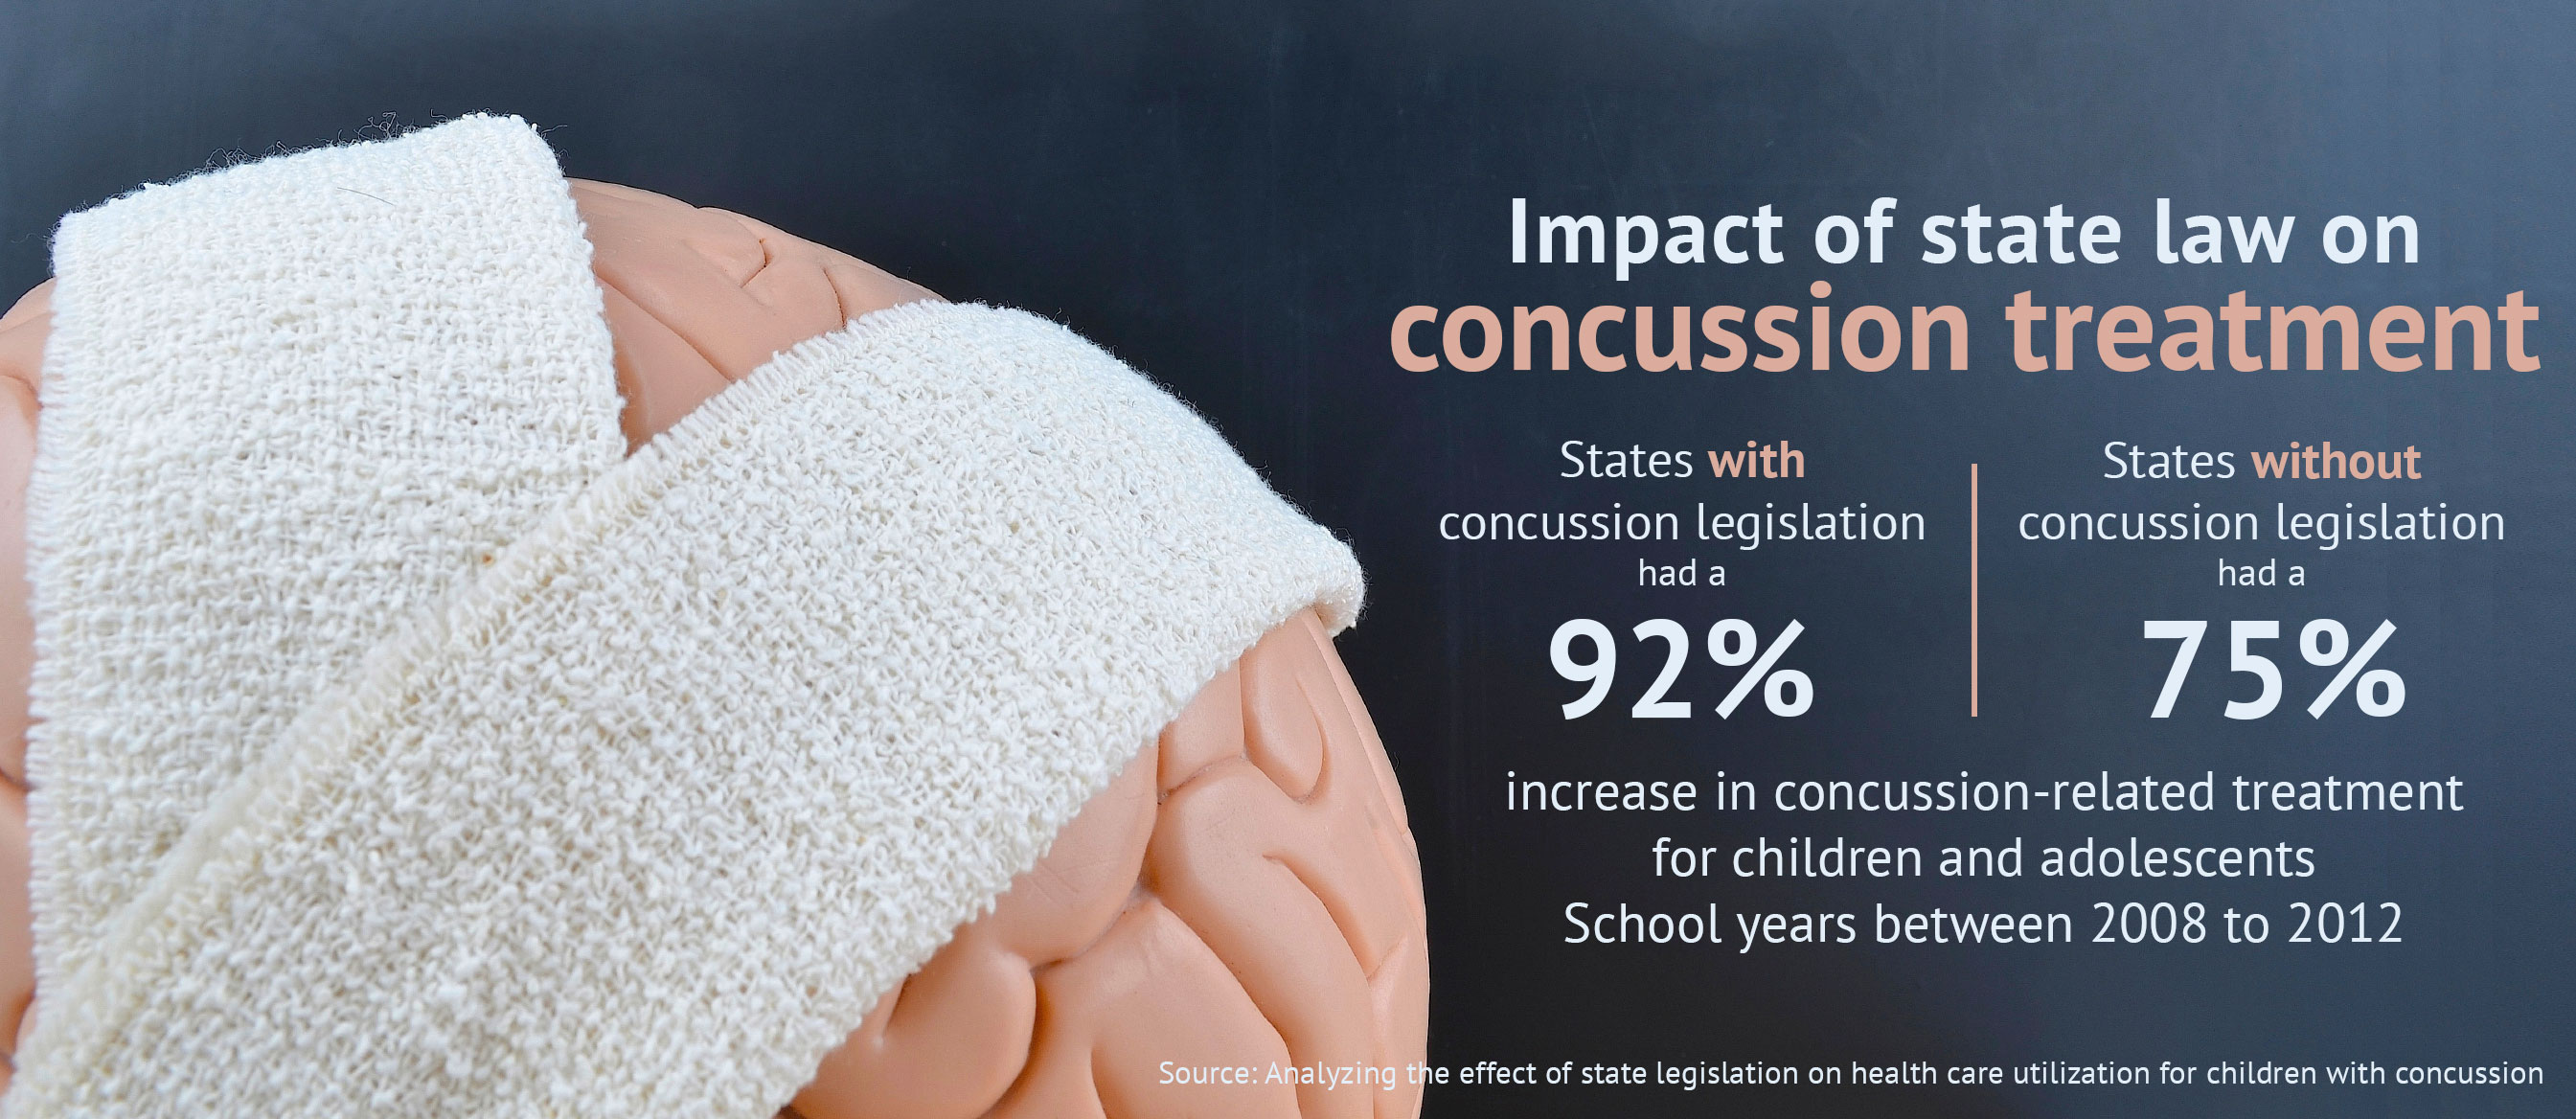 An infographic presenting information on the impact of state law on concussion treatment.